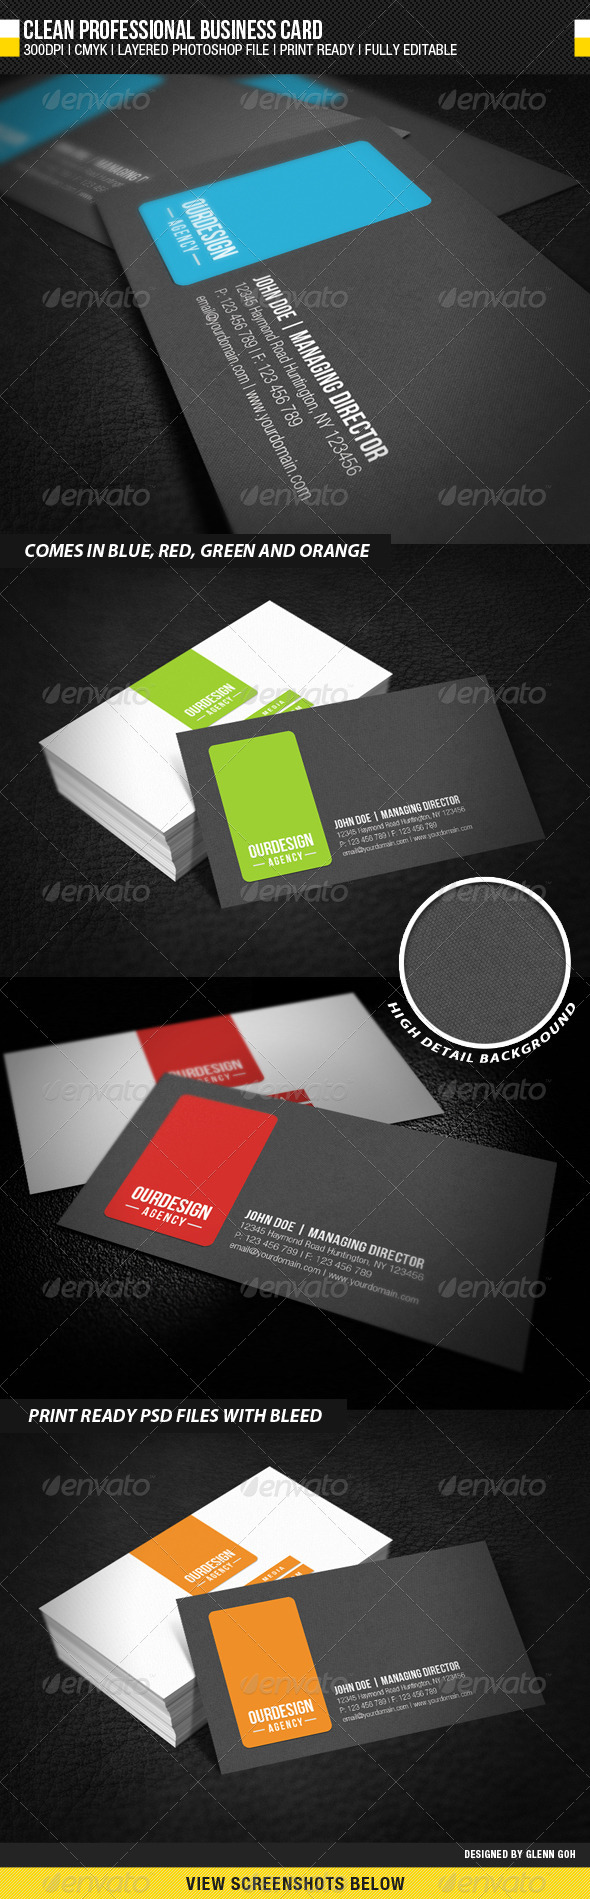 GraphicRiver Clean Professional Business Card 1530539